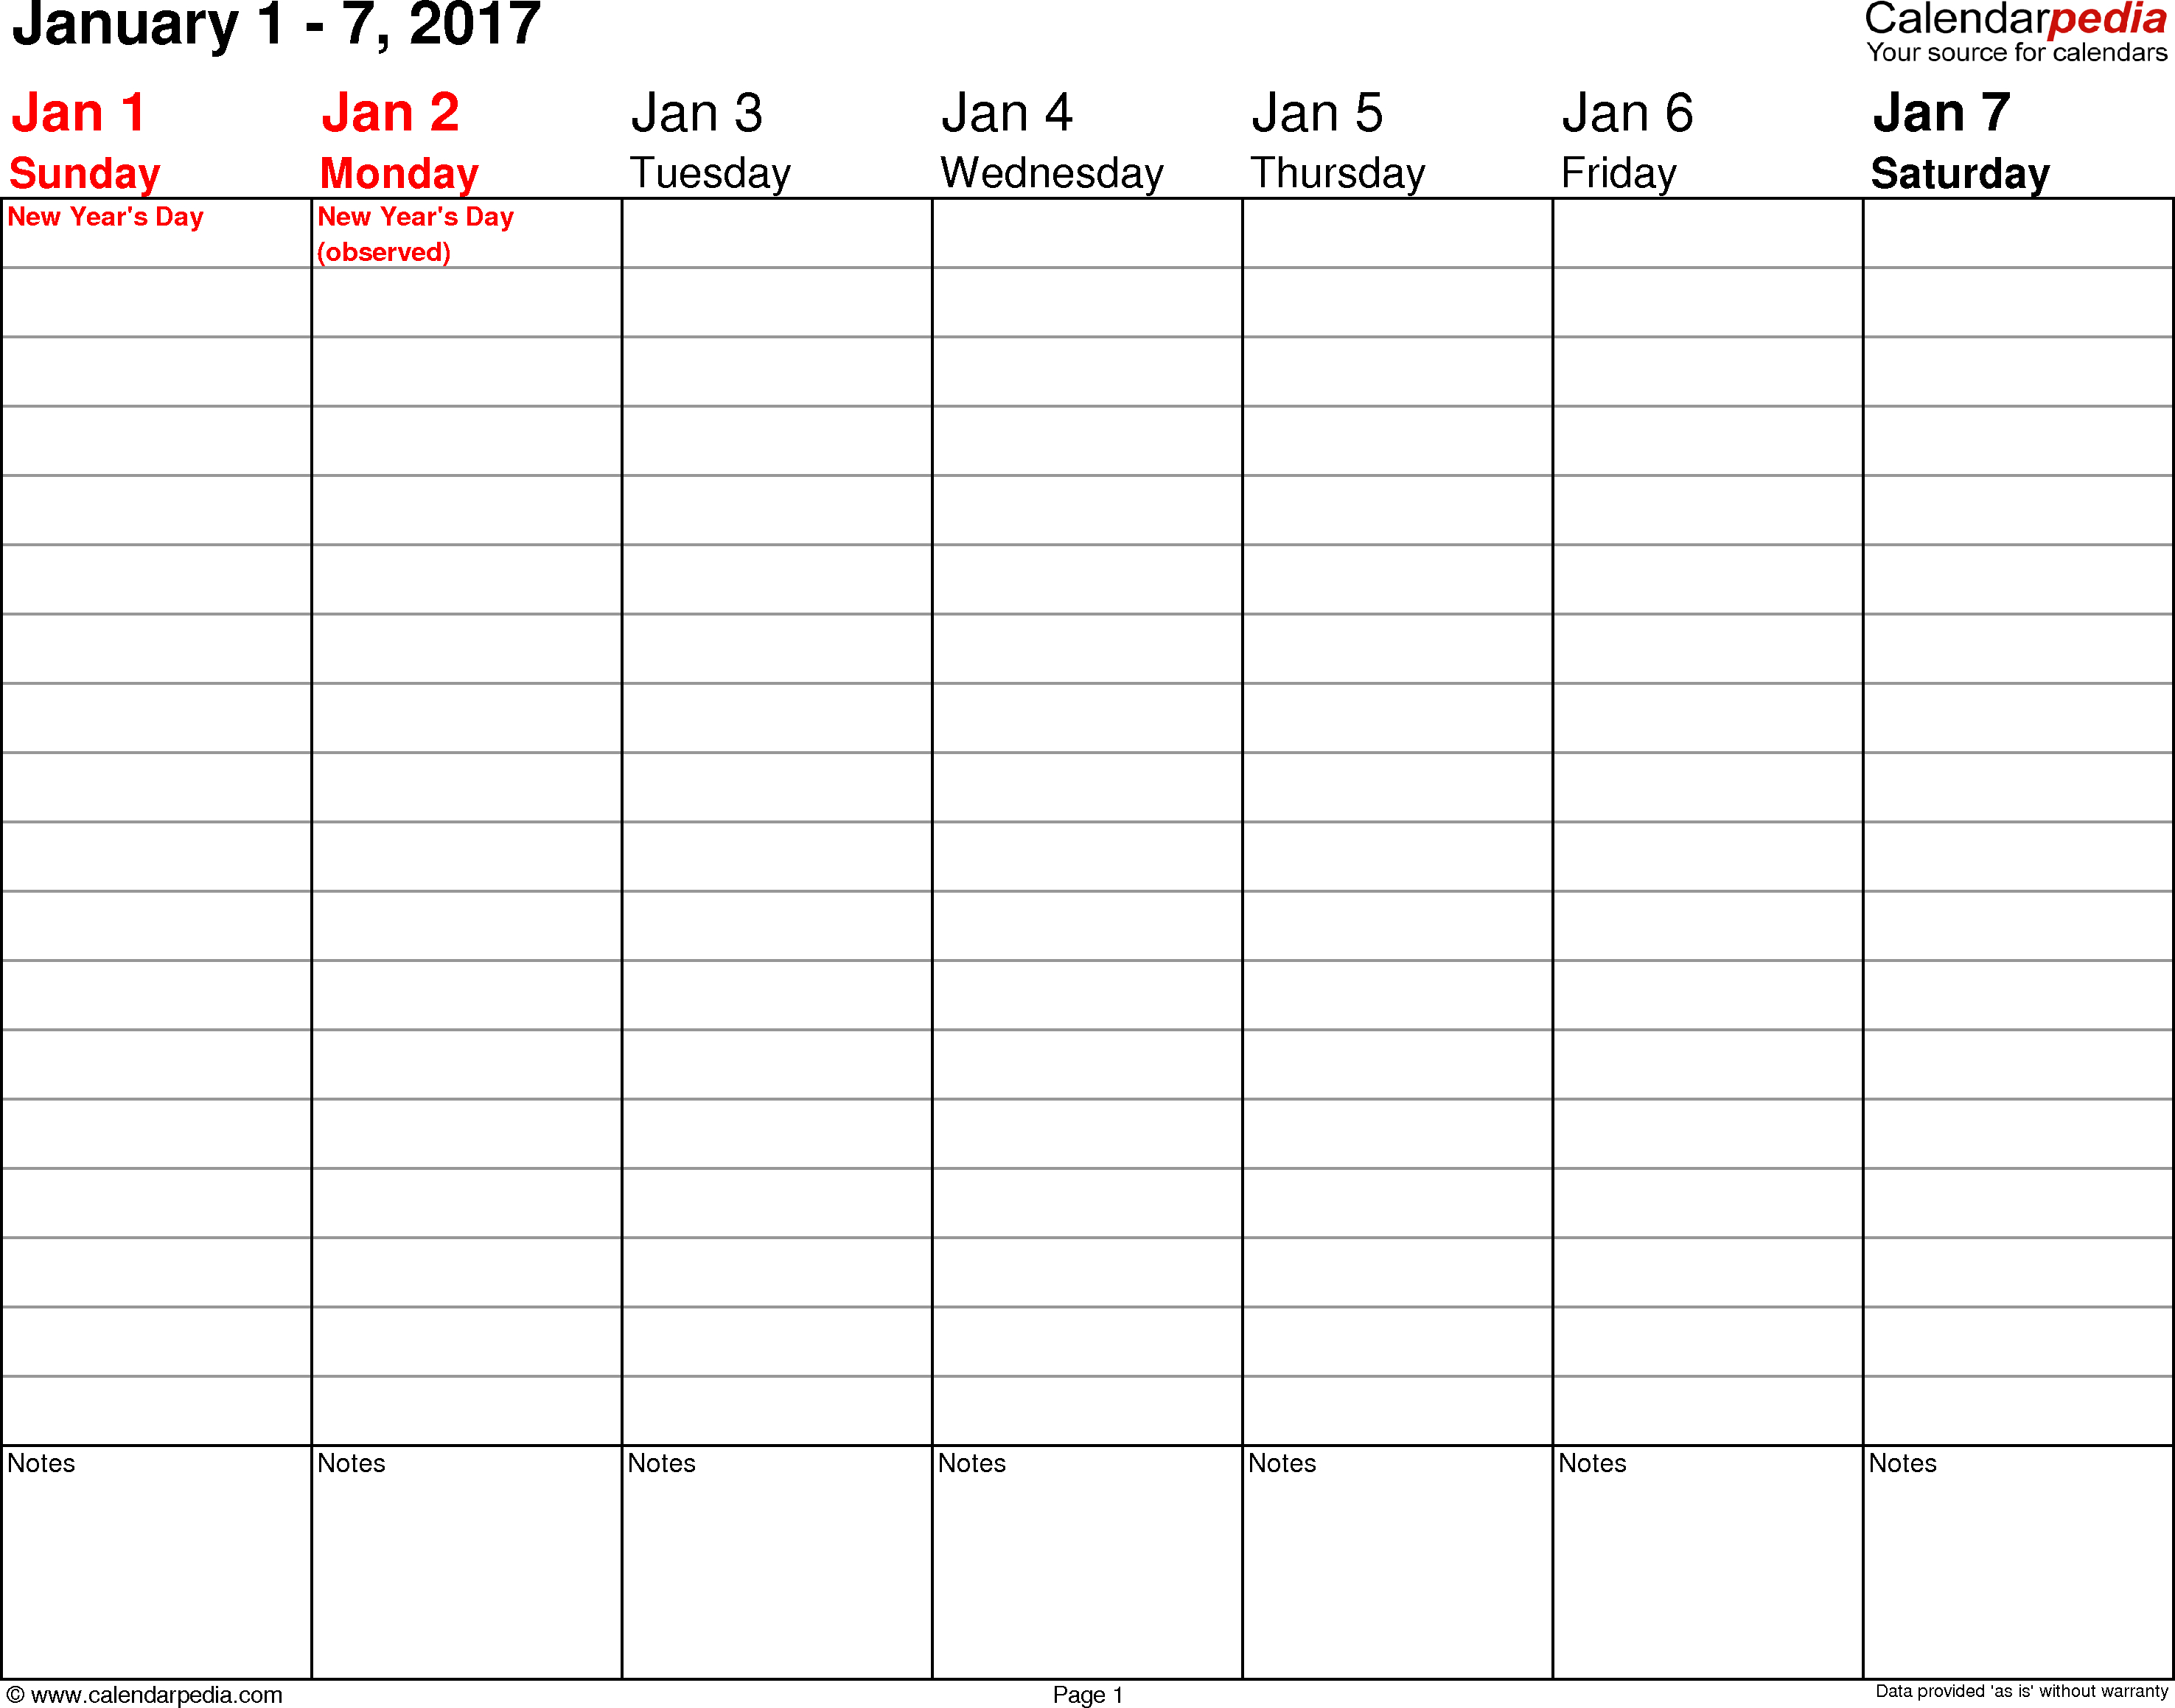 Weekly Calendar 2017 For Word – 12 Free Printable Templates - Free Printable Daily Planner 2017